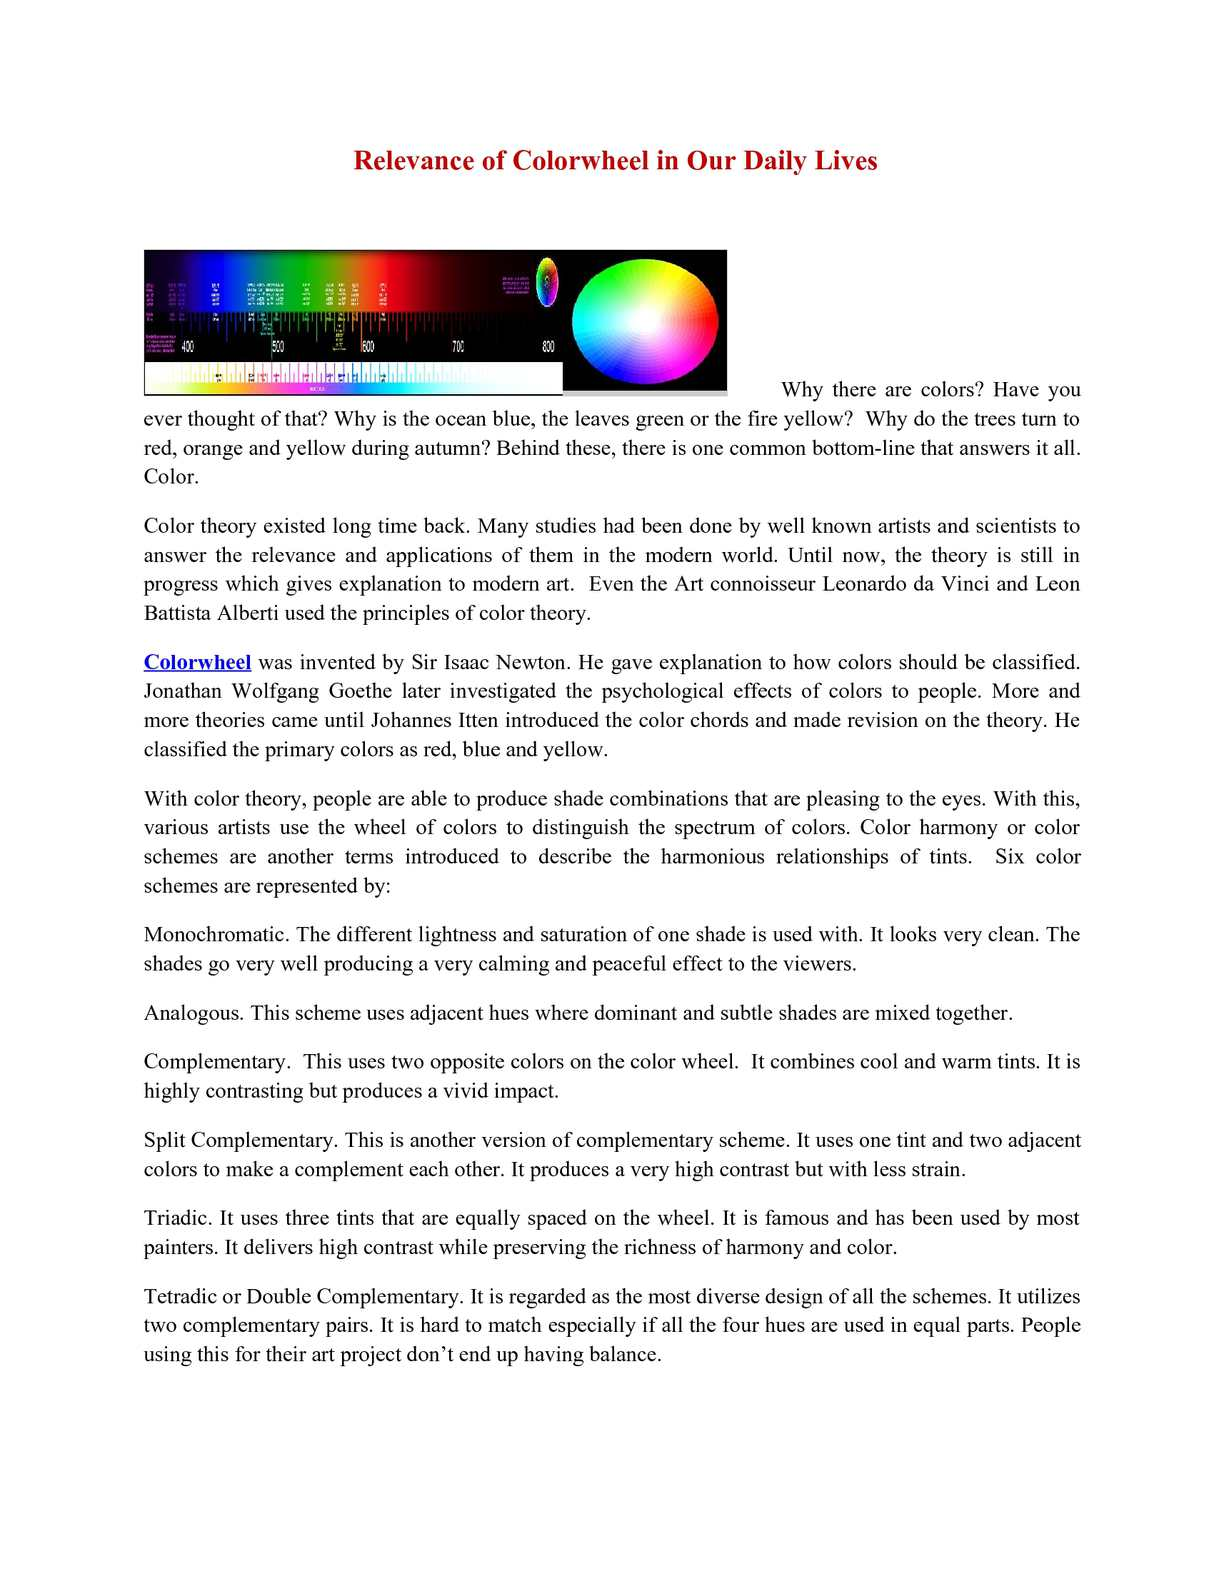 calaméo relevance of colorwheel in our daily lives